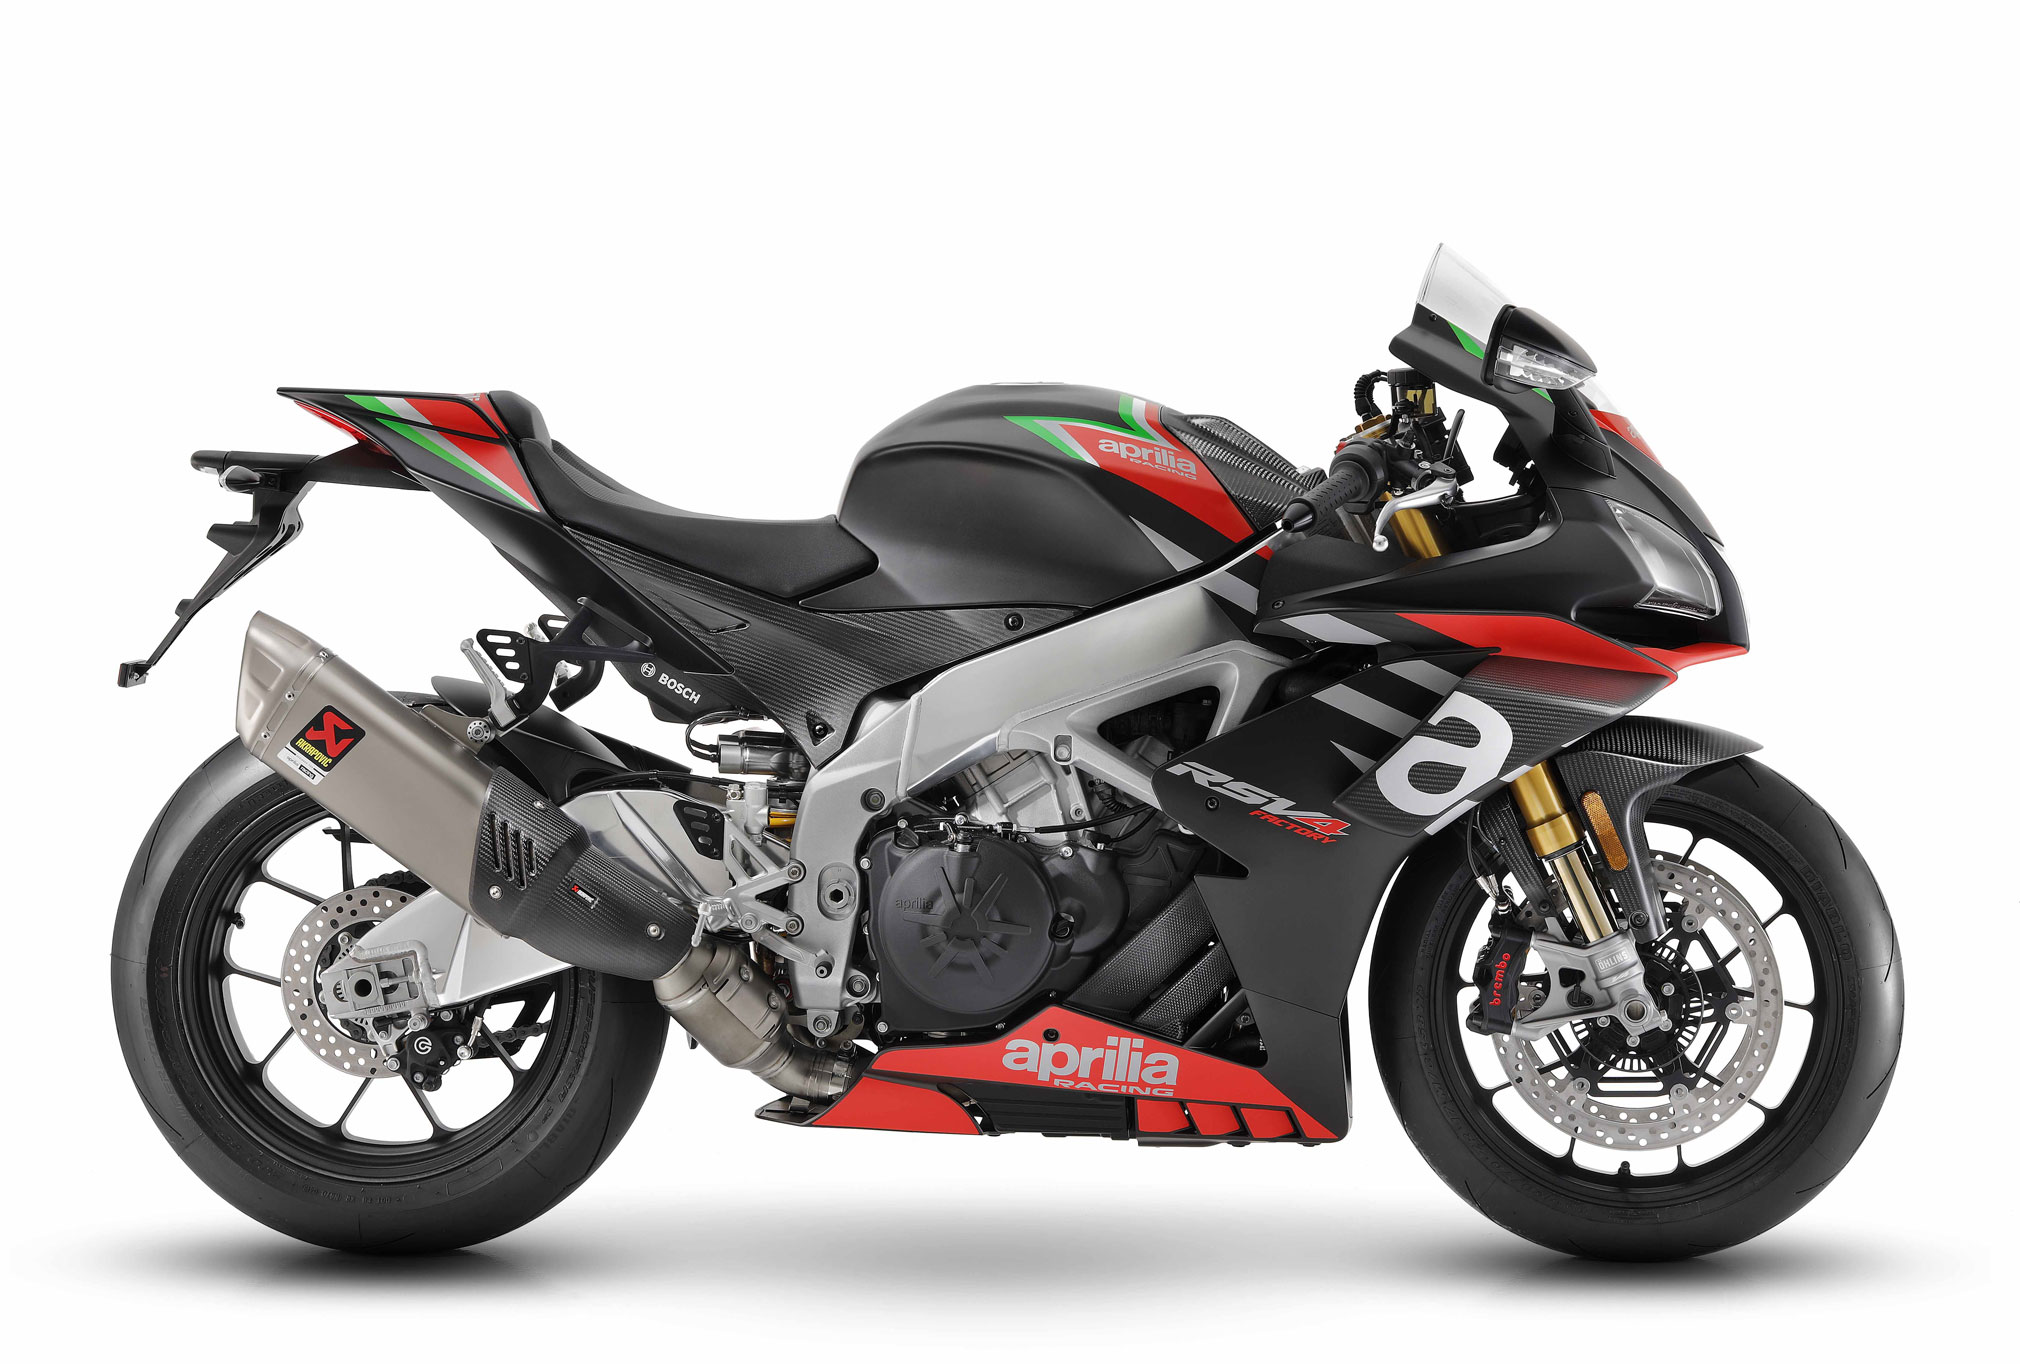 2020 Aprilia RSV4 1100 Factory Guide • Total Motorcycle